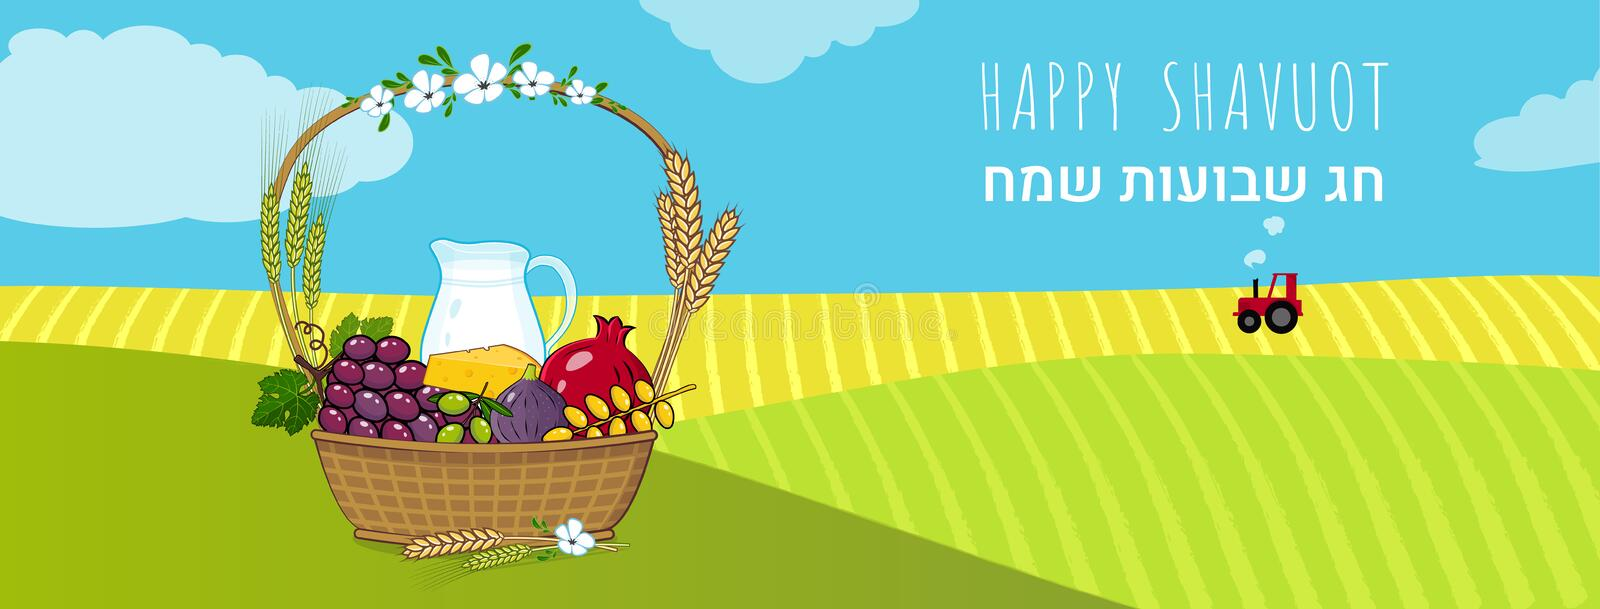 Shavuot Jewish holiday concept with fruits basket Vector illustration. Happy Shavuot in Hebrew royalty free illustration